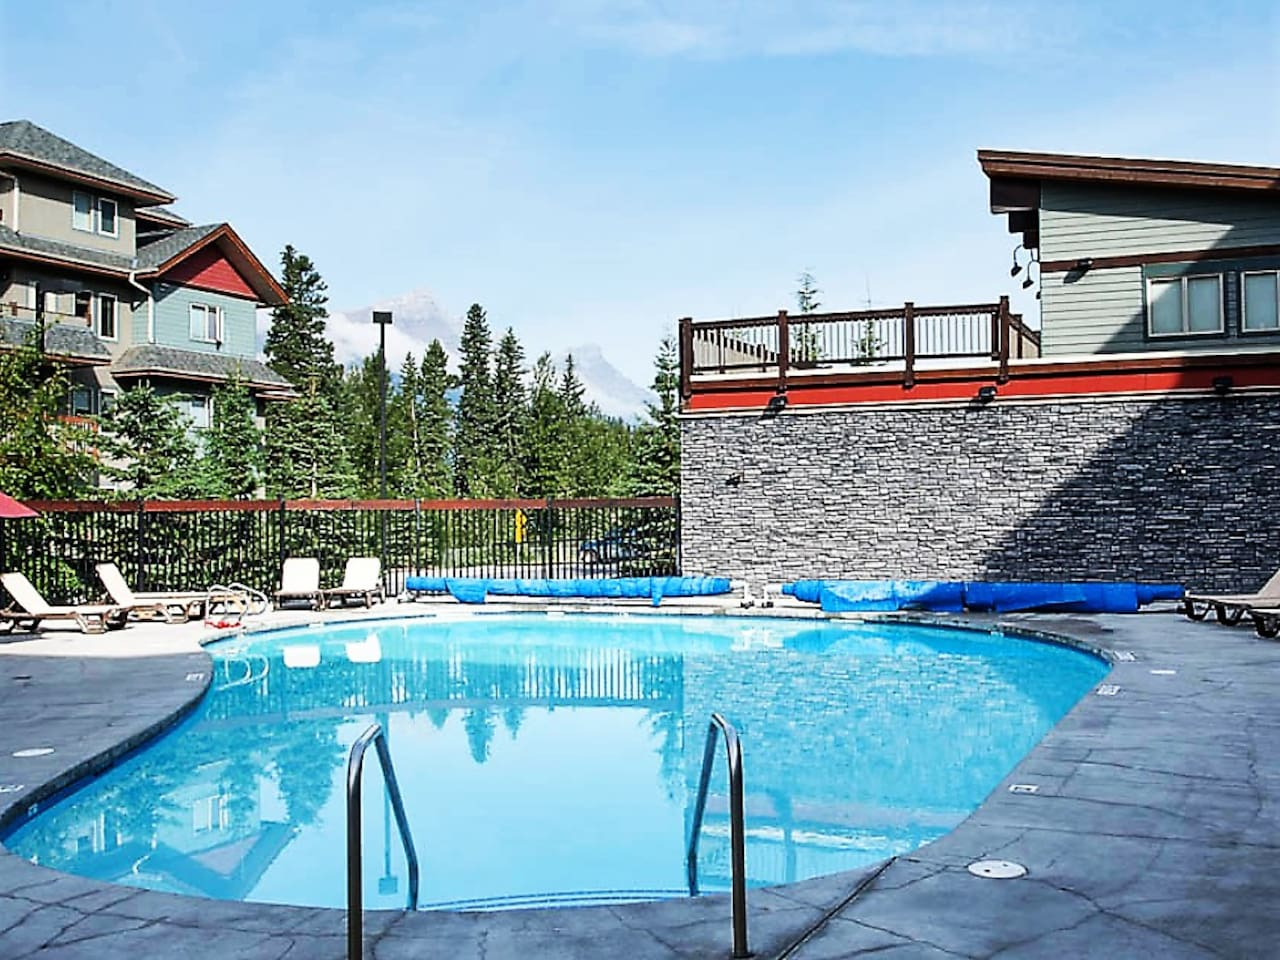 Premium 2BR condo, walk distance to downtown Canmore. Heated Pool, Hot Tub, and more